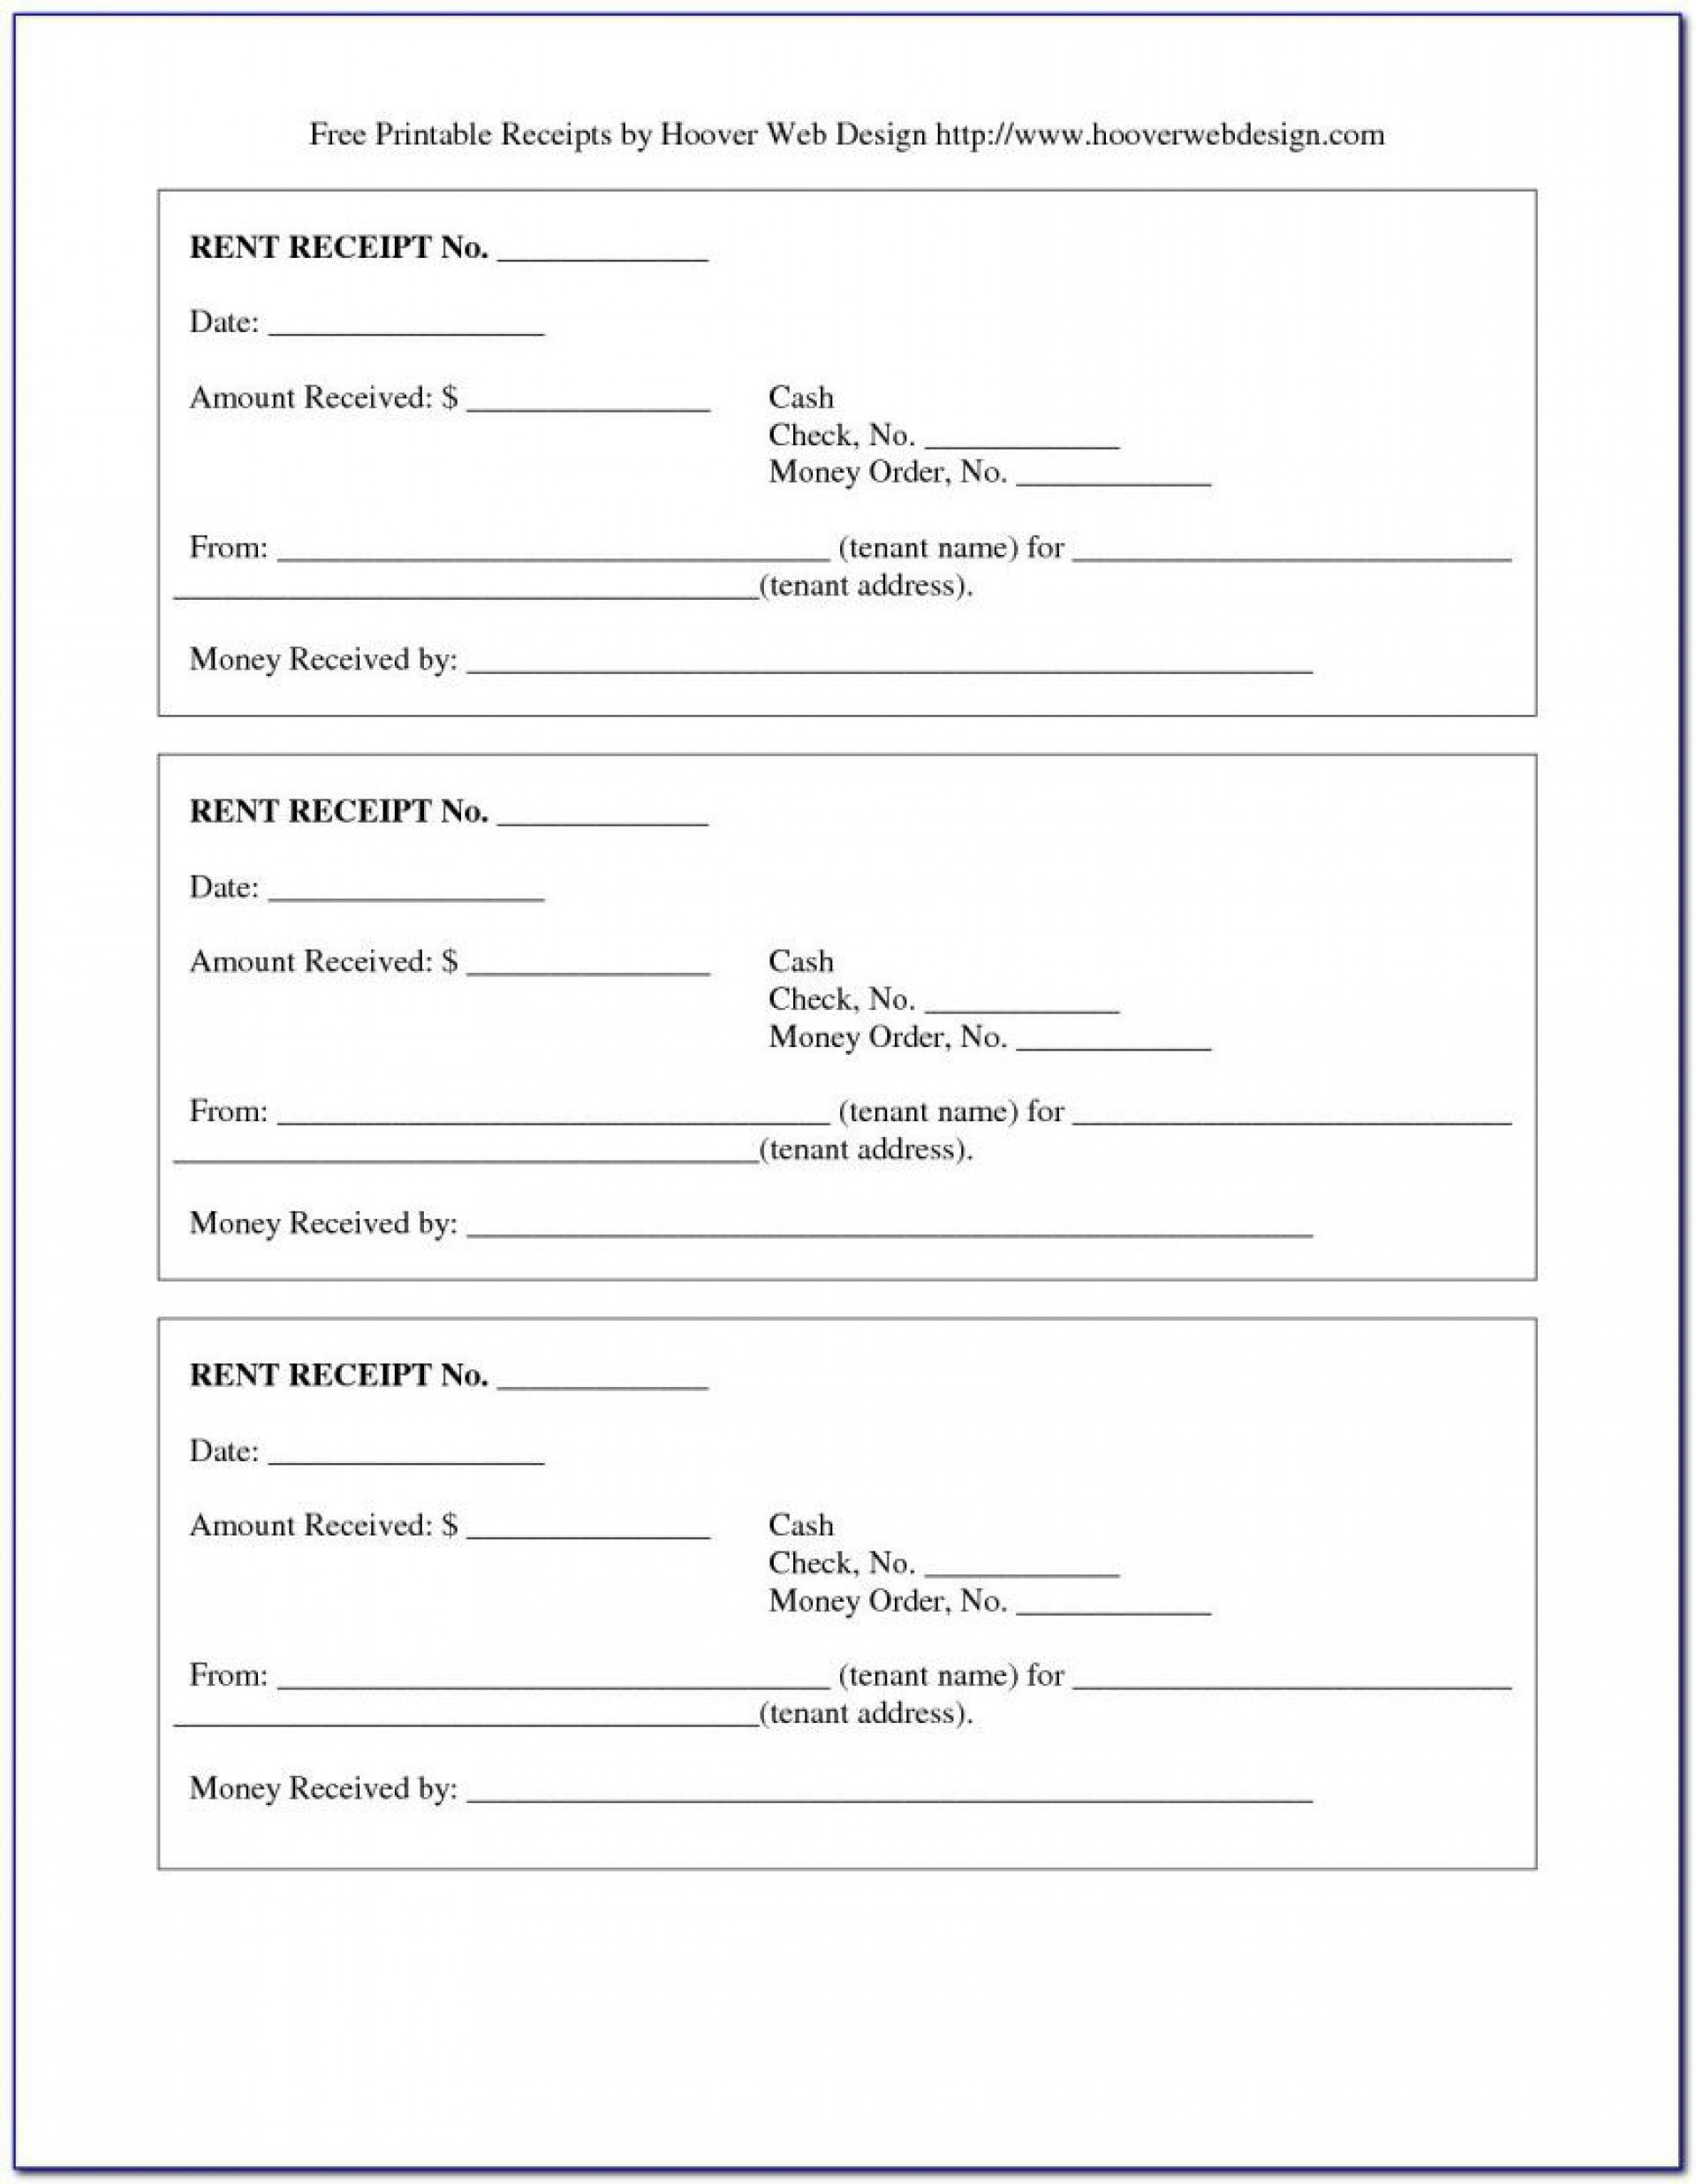 Free Rent Receipt Template Excel from www.addictionary.org